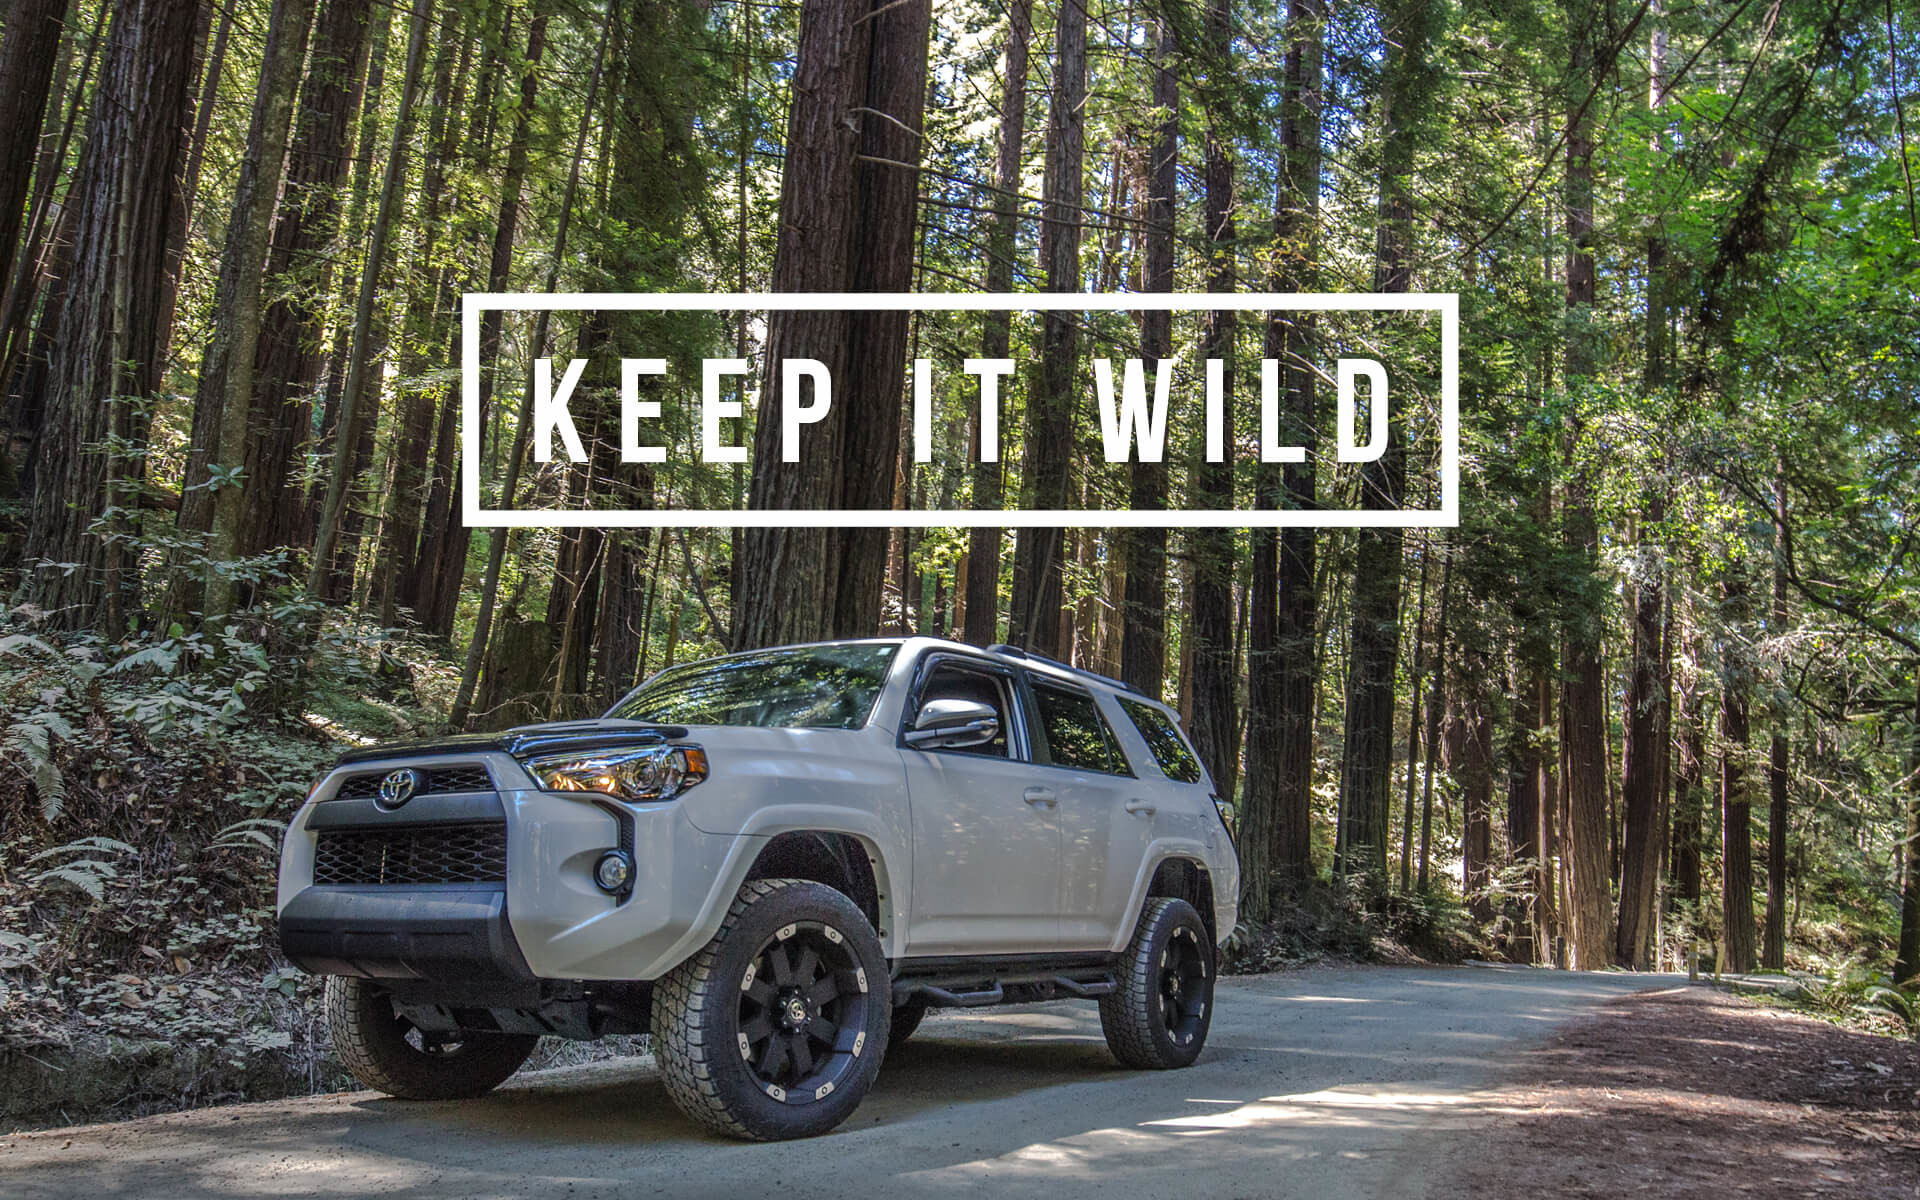 1920x1200 TRD PRO Wallpaper Background - Keep It Wild